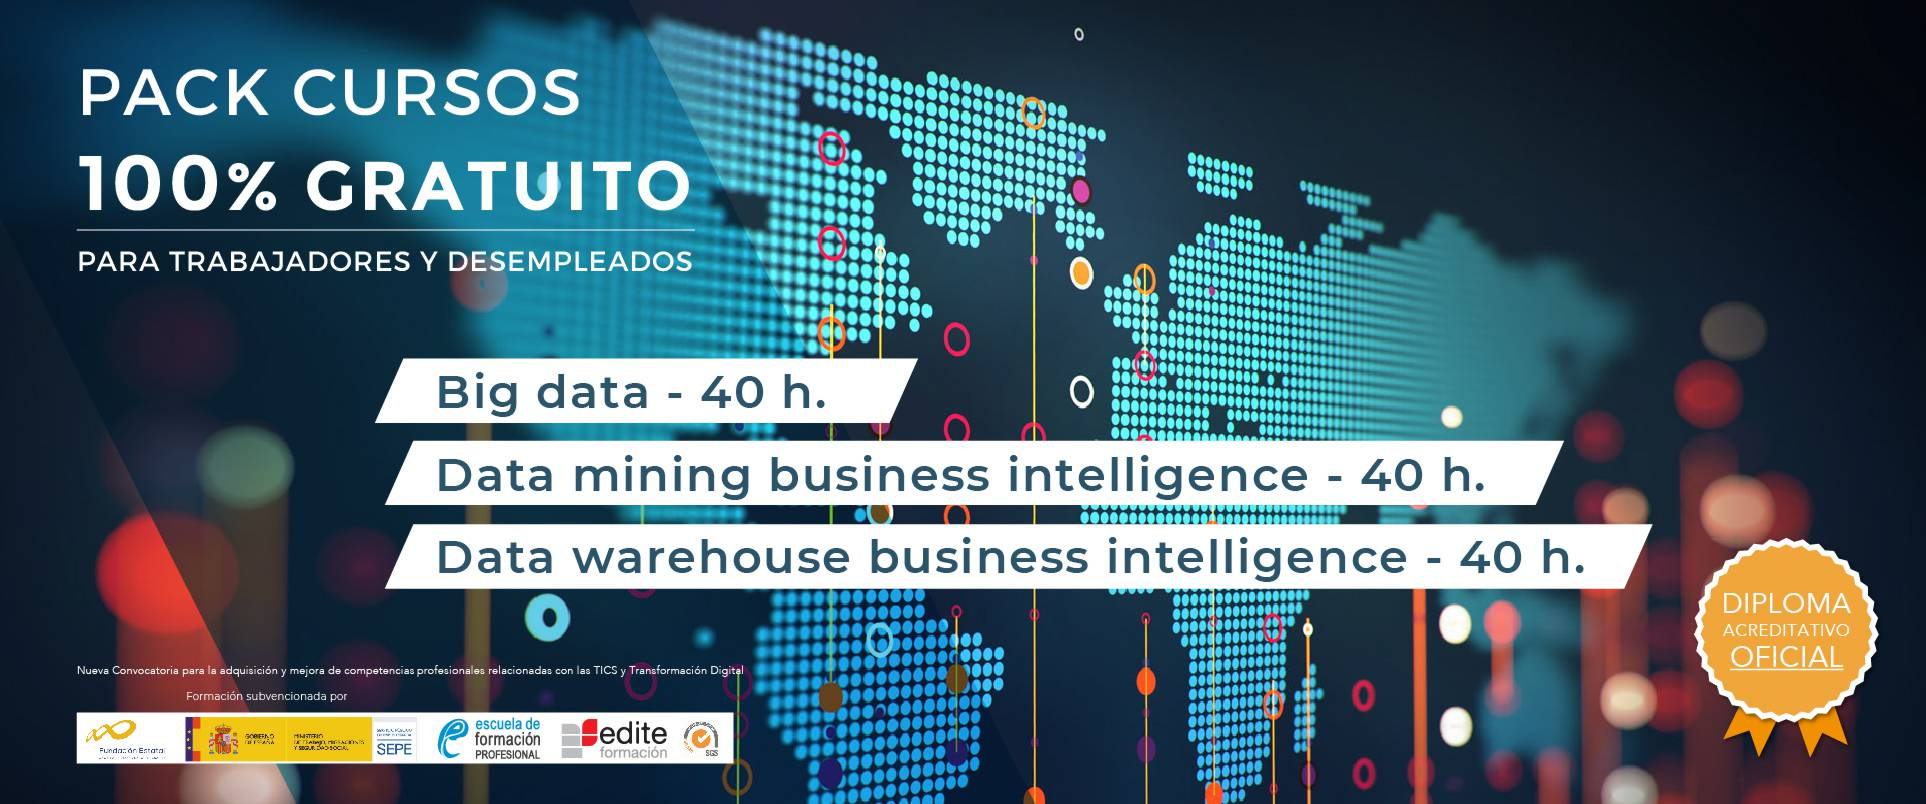 Pack de cursos - Big Data, Data Mining y Data Warehouse